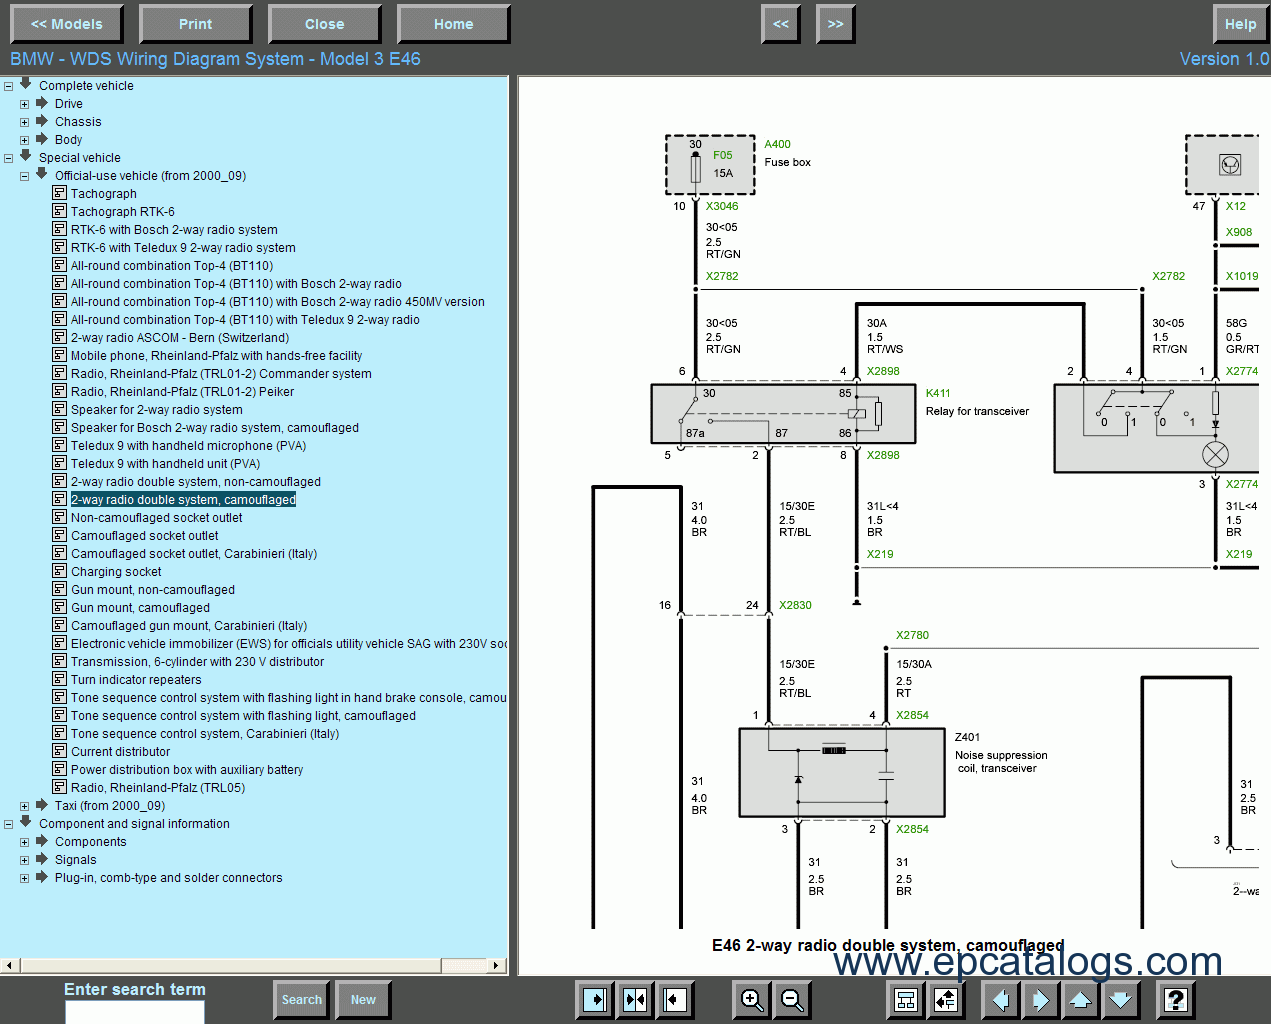 bmw9?resize\\\\\\\\\\\\\\\=665%2C536\\\\\\\\\\\\\\\&ssl\\\\\\\\\\\\\\\=1 bmw wds v12 0 wiring diagram system for bmw vehicles youtube on wds bmw wiring diagrams online at gsmx.co